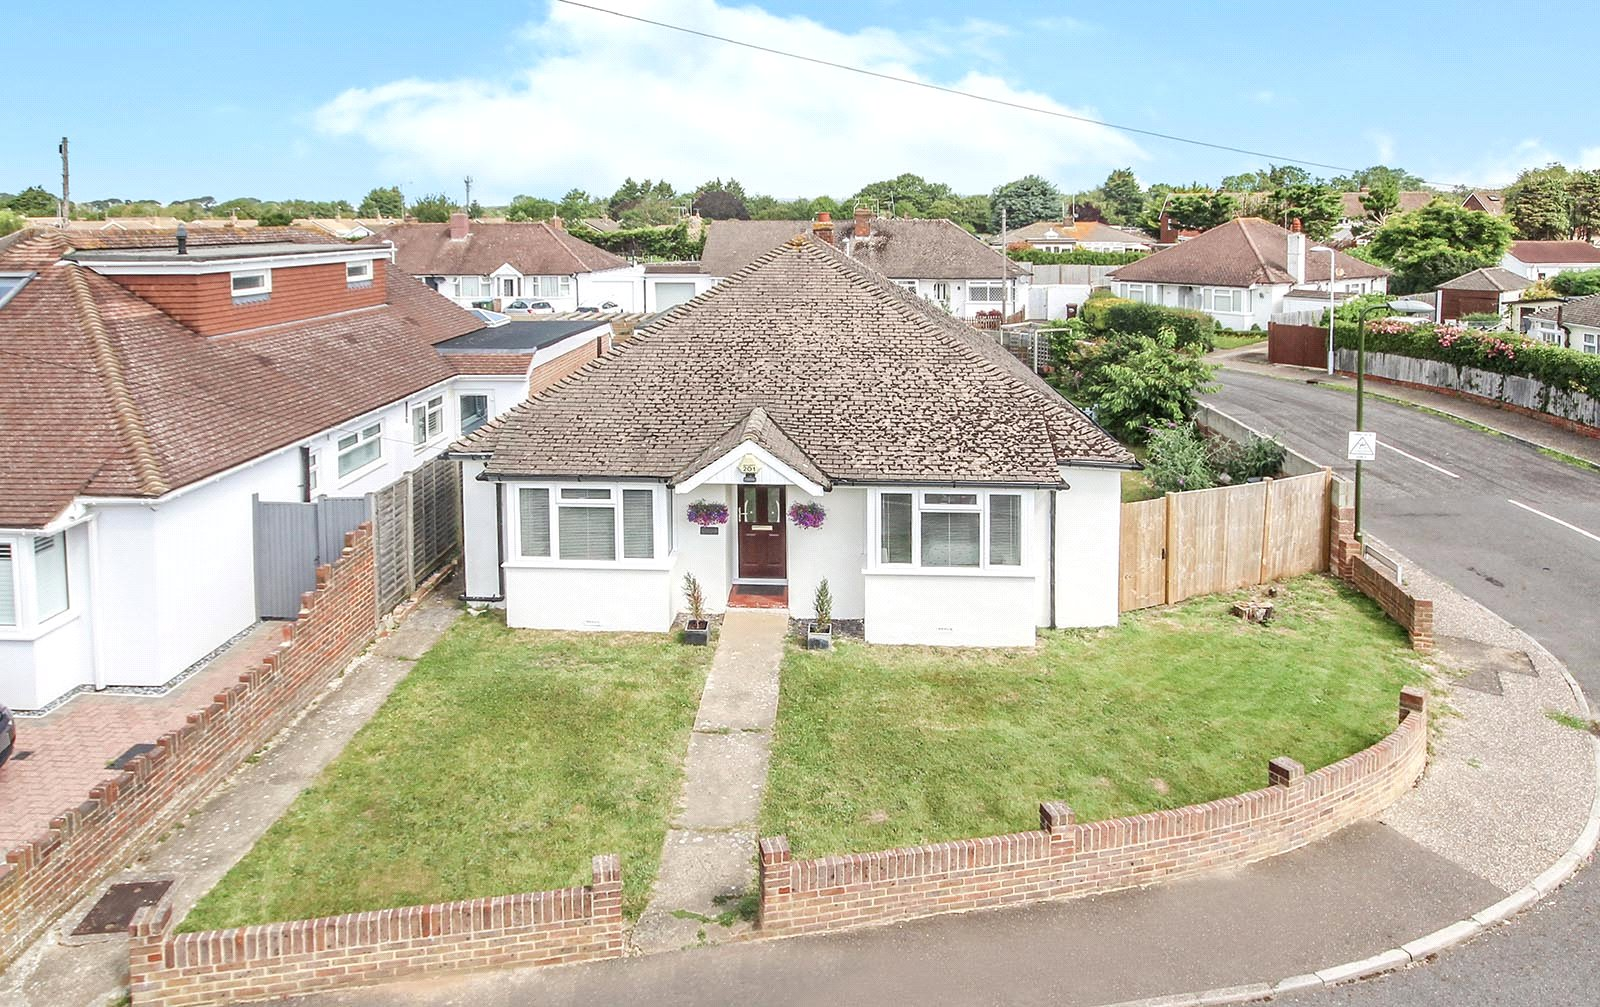 4 bed bungalow for sale in Worthing Road, East Preston, BN16